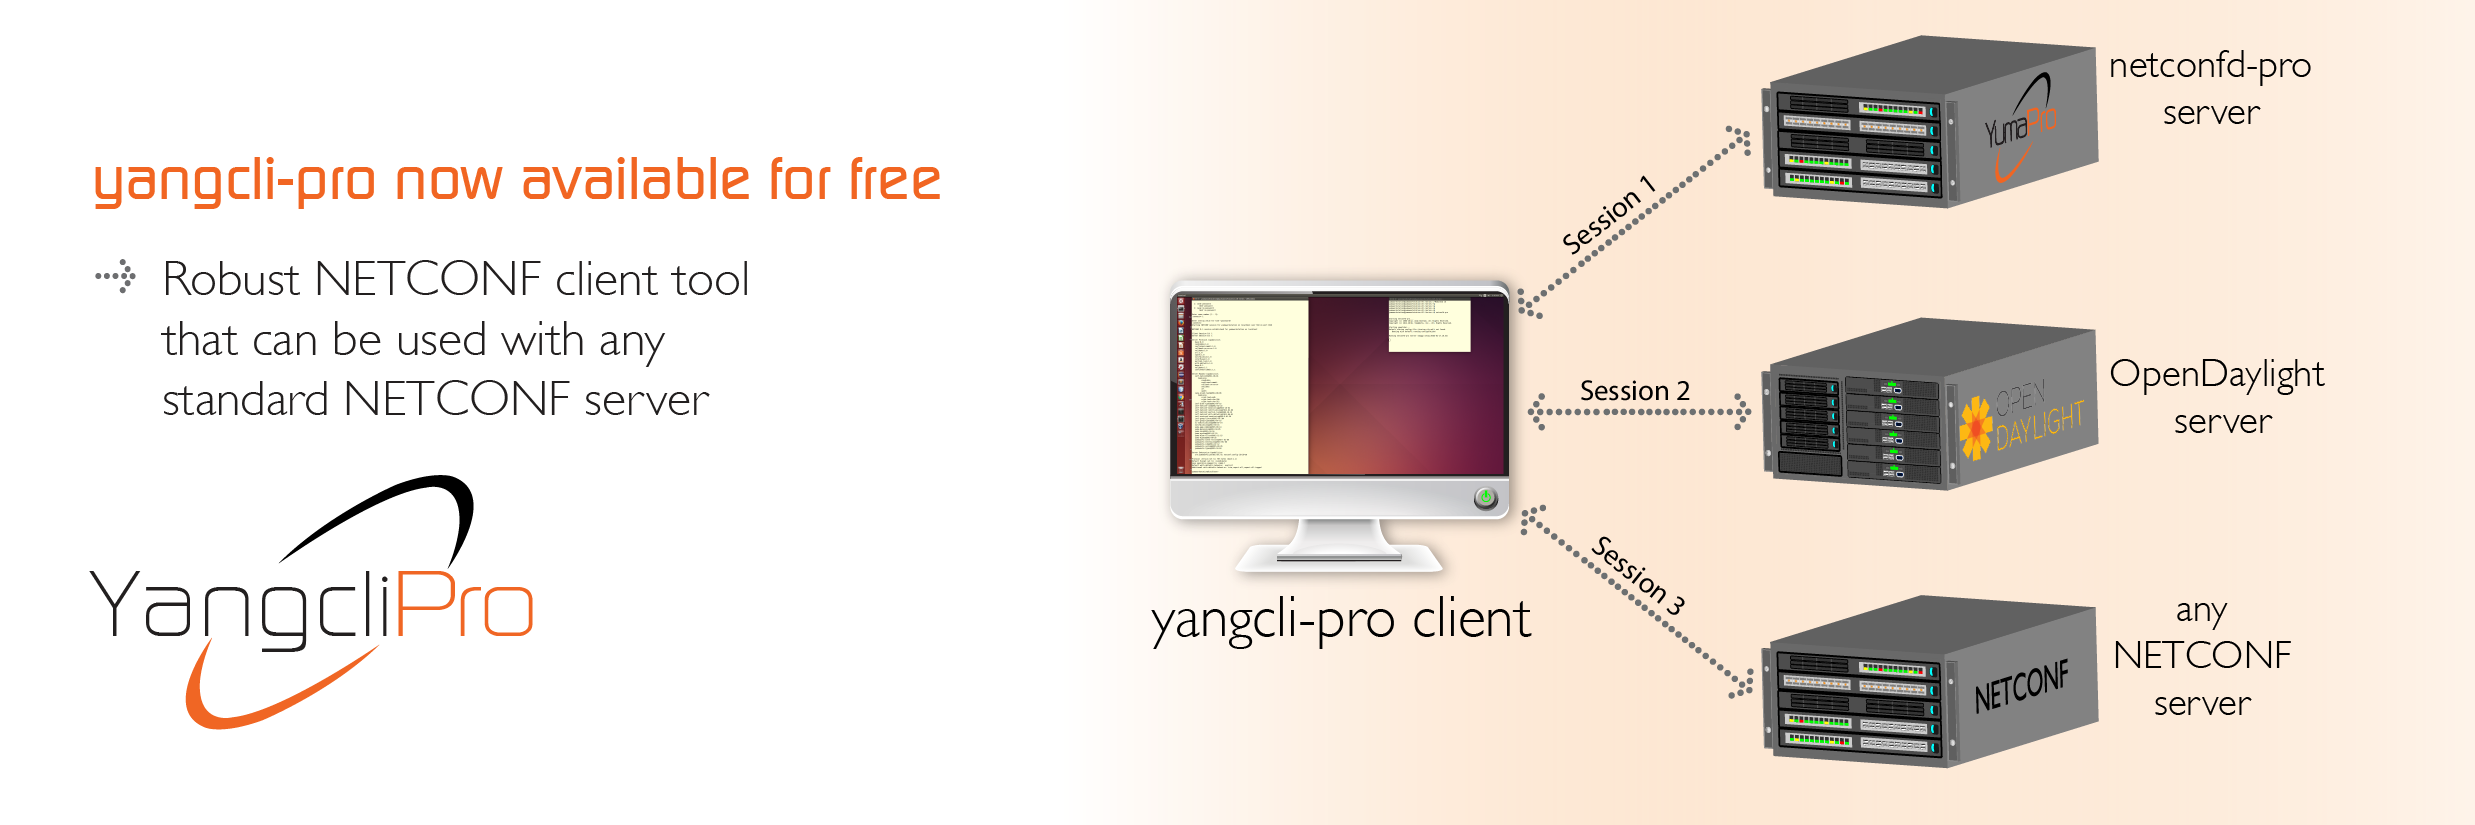 yangcli-pro is now free!